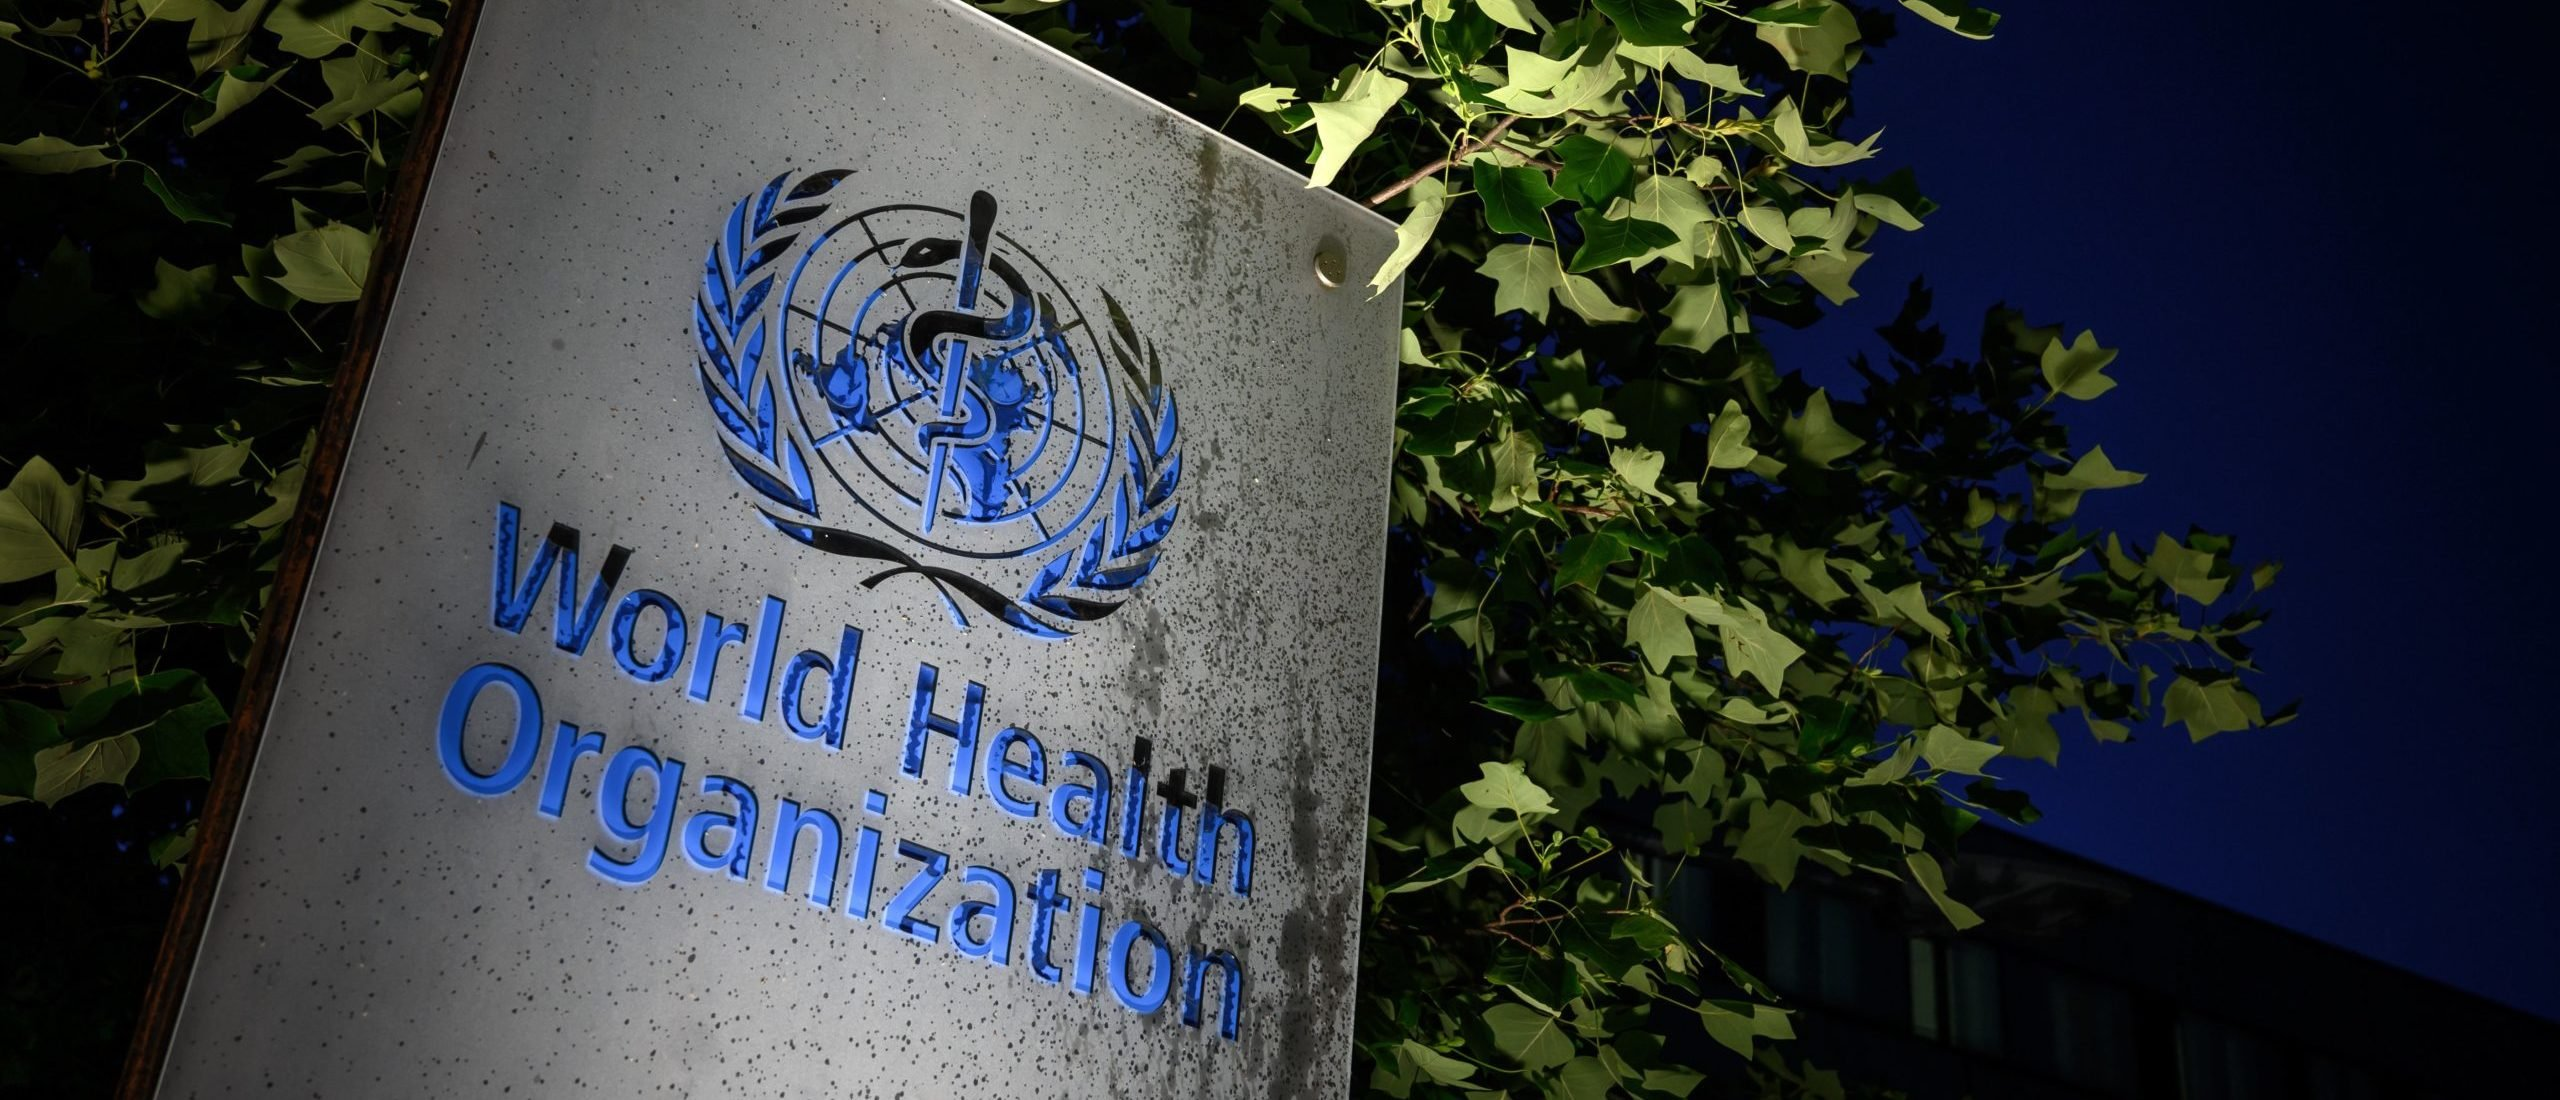 TOPSHOT - A photo taken in the late hours of May 29, 2020 shows a sign of the World Health Organization (WHO) at their headquarters in Geneva amid the COVID-19 outbreak, caused by the novel coronavirus. - President Donald Trump said May 29, 2020, he was breaking off US ties with the World Health Organization, which he says failed to do enough to combat the initial spread of the novel coronavirus. (Photo by Fabrice COFFRINI / AFP) (Photo by FABRICE COFFRINI/AFP via Getty Images)